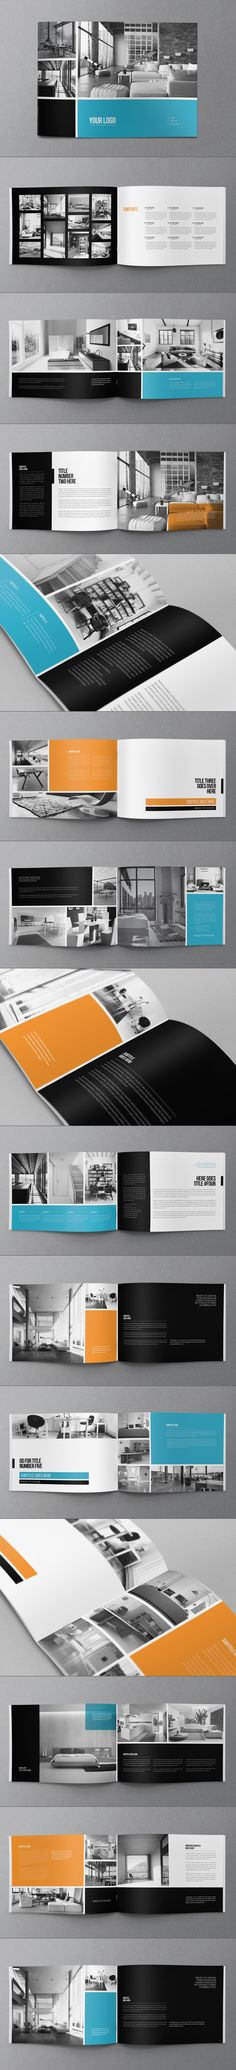 https://www.behance.net/gallery/19618823/Minimal-Modern-Brochure